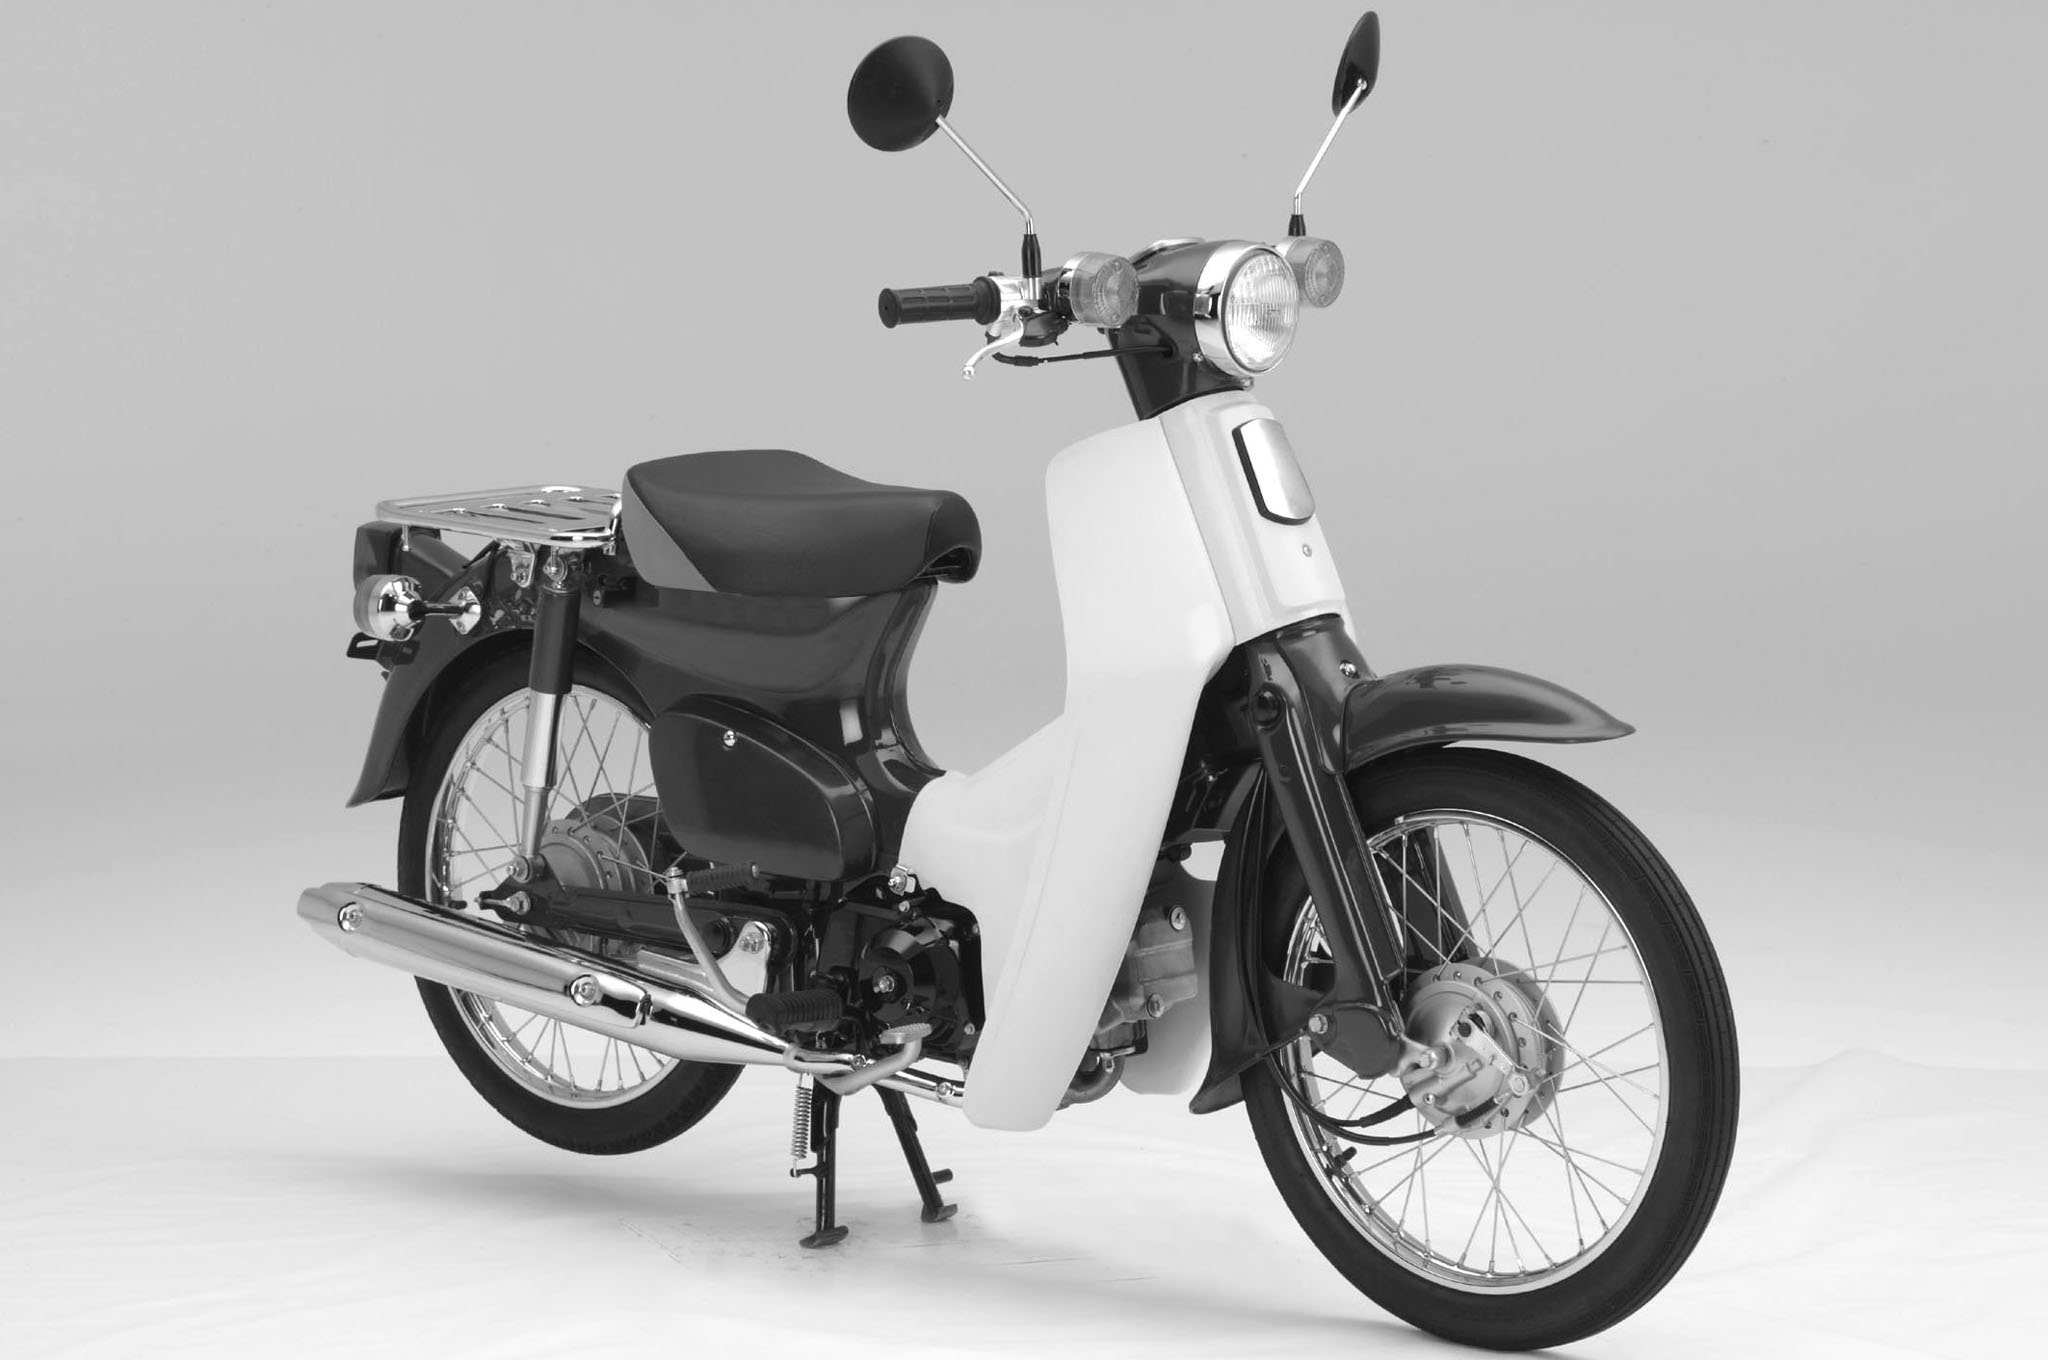 Honda Super Cub Scooter